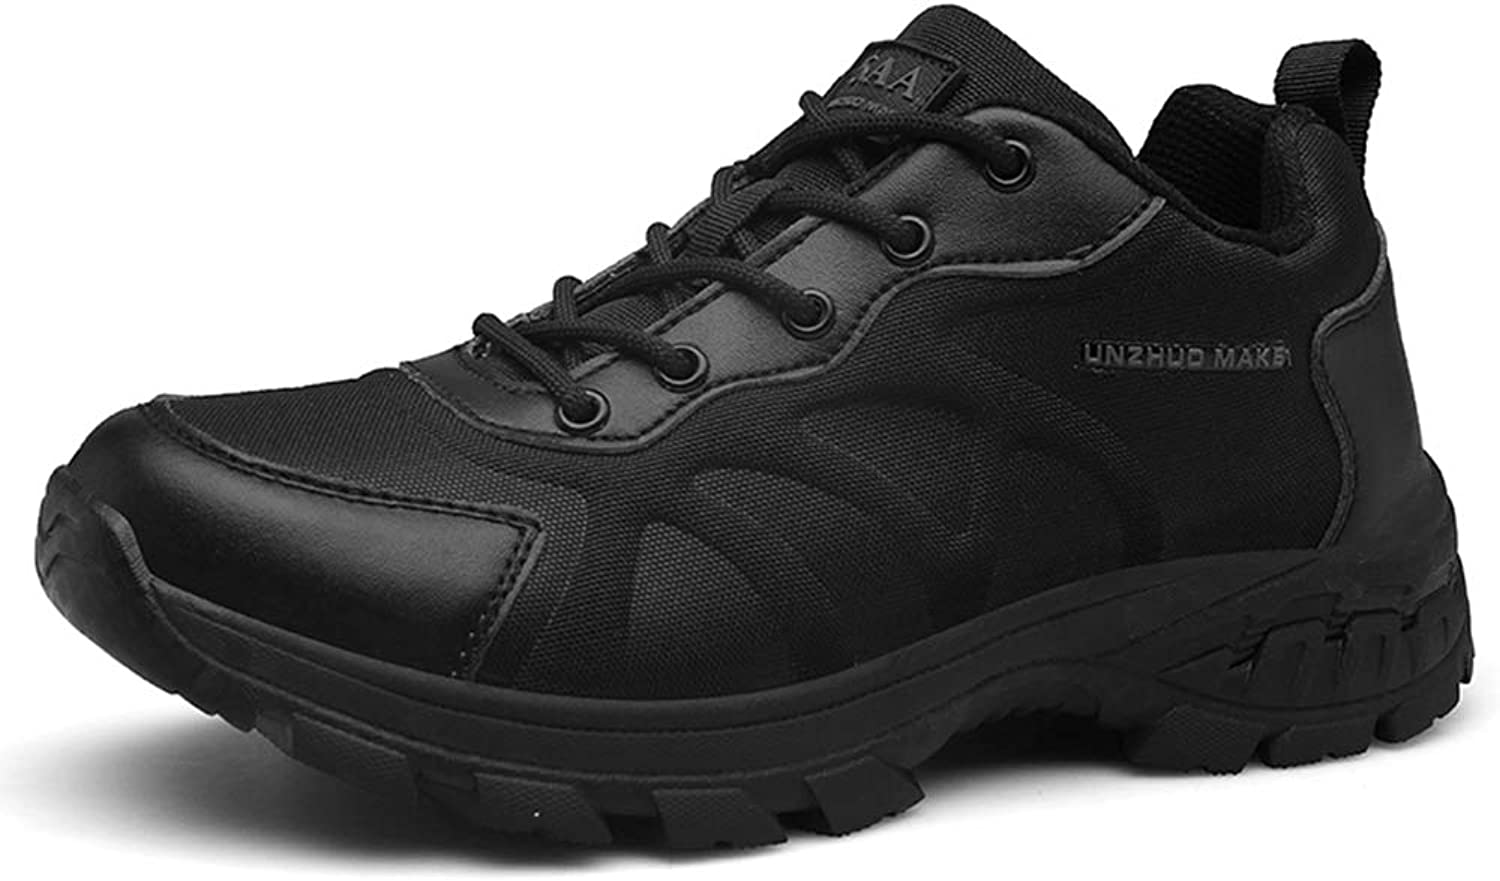 Suetar Men's Breathable Nylon Upper and Non-Slip Rubber Sole Military Tactical Sports shoes K12